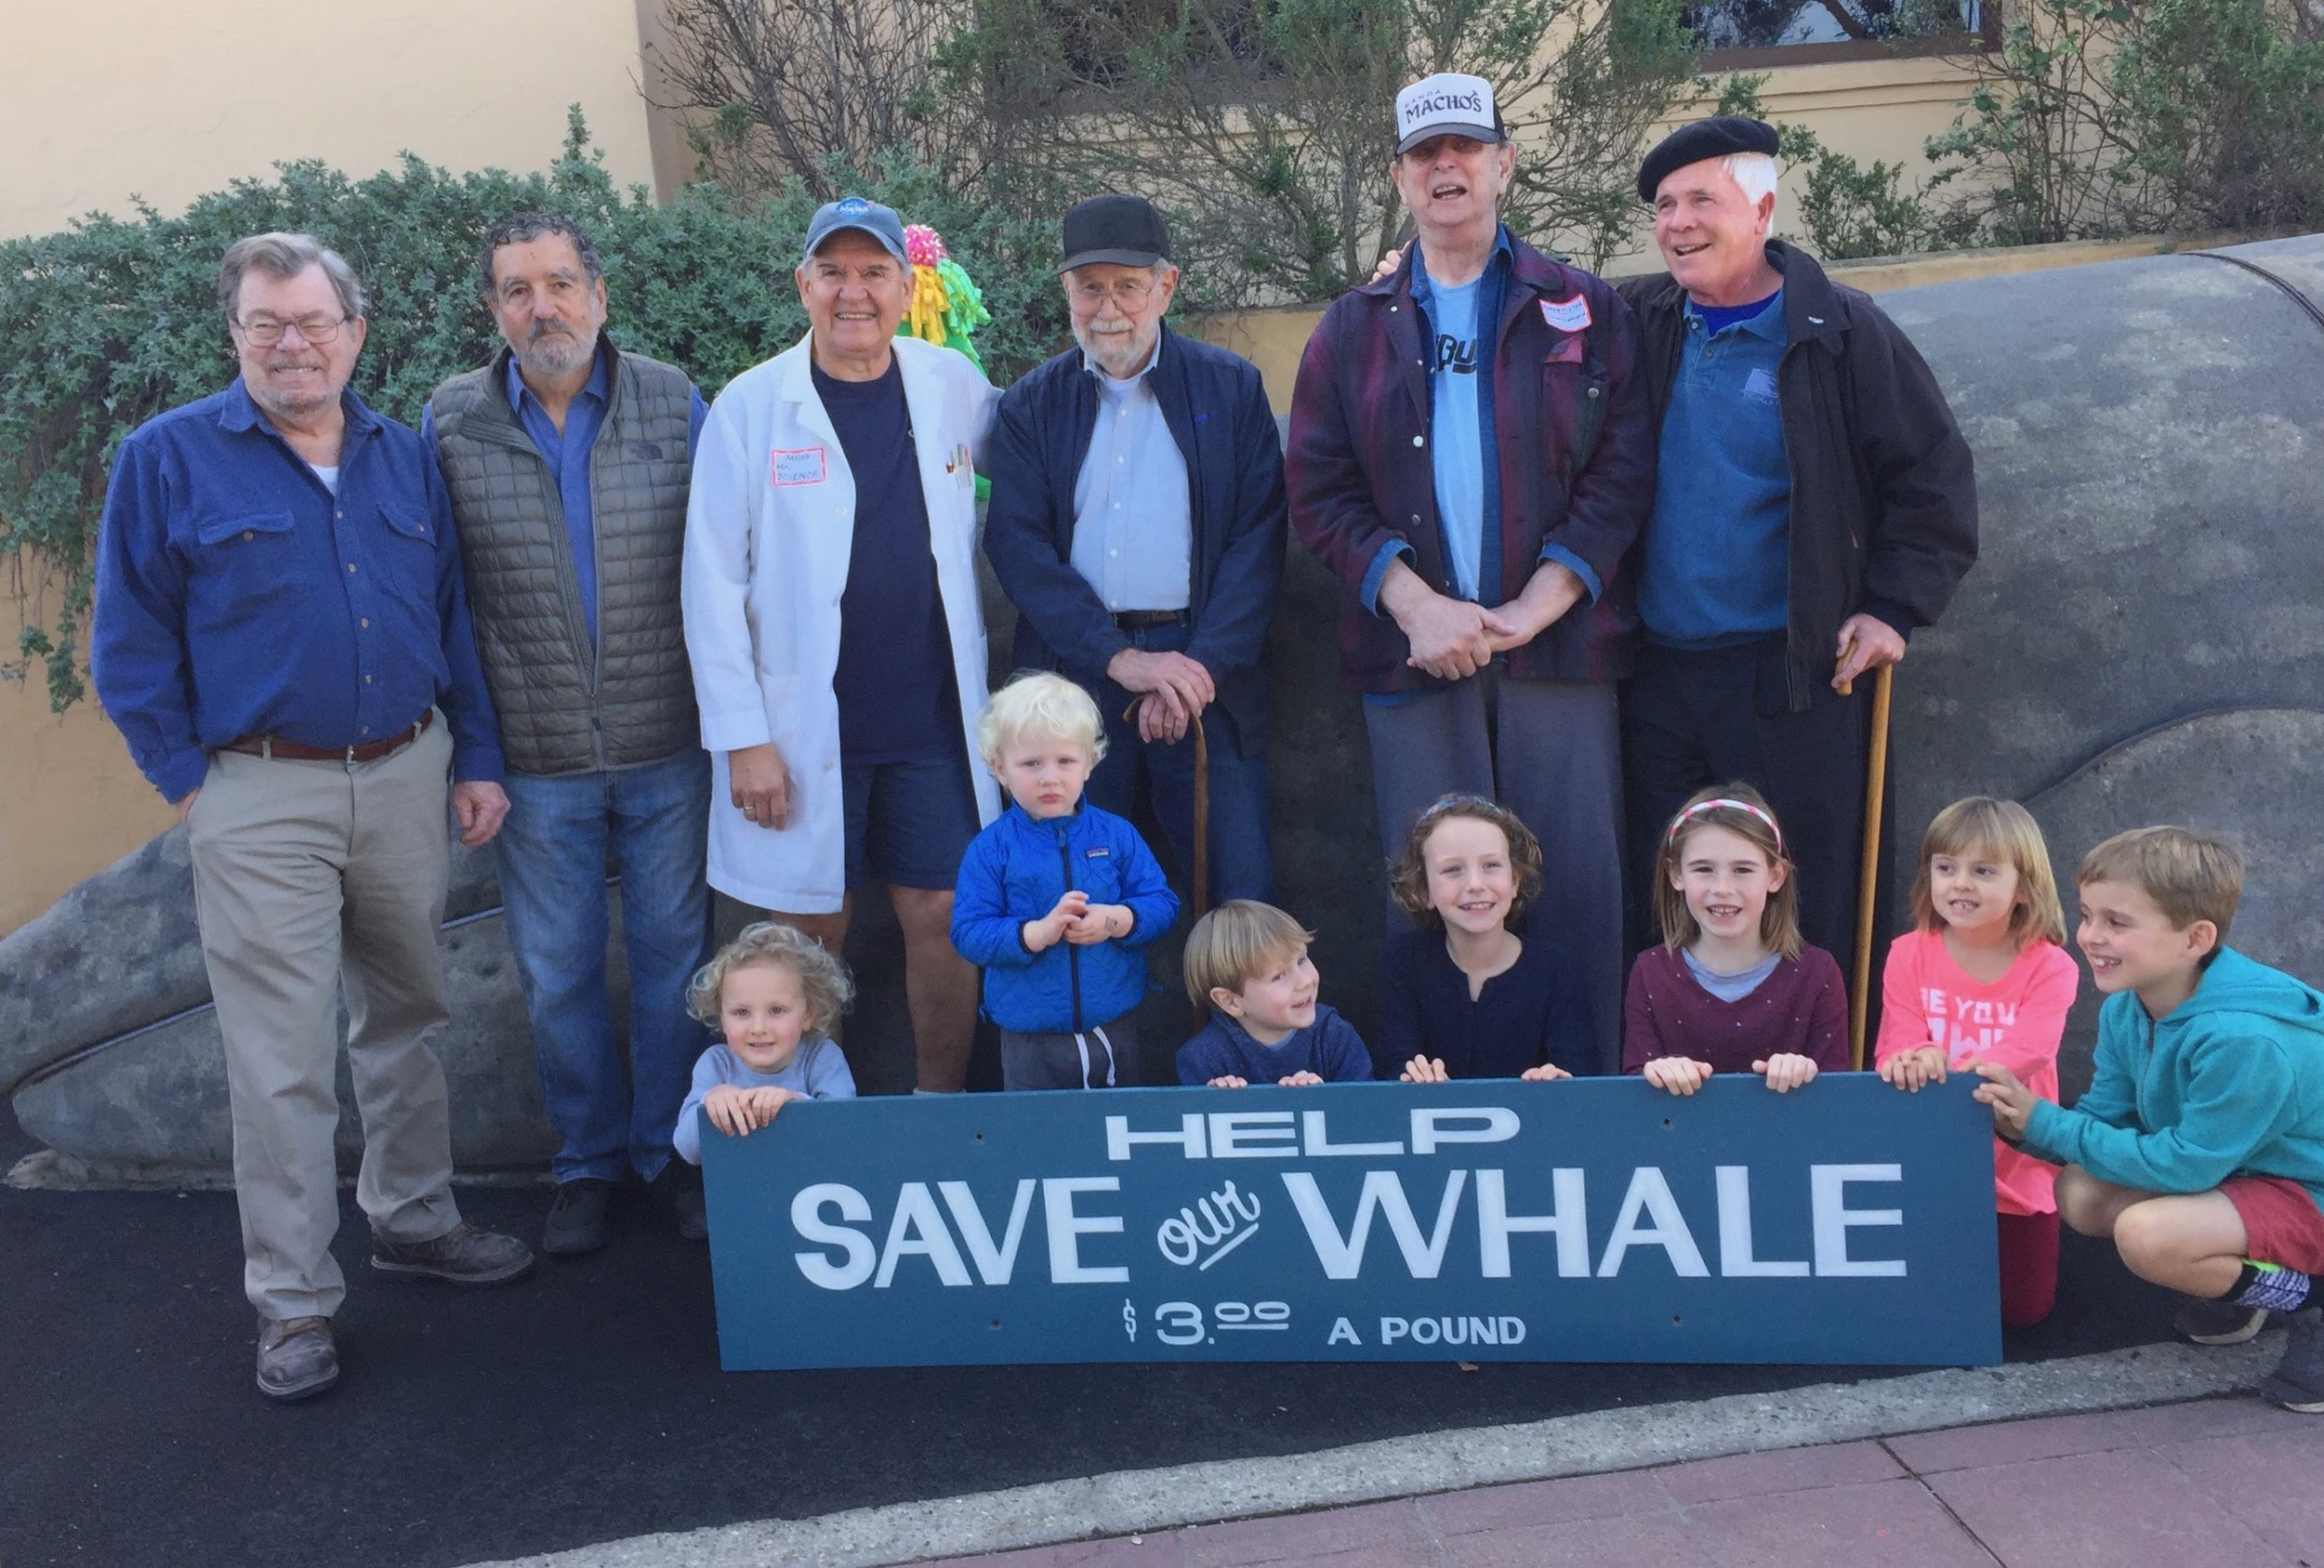 'Whale Fund ' g roup that led the way in making Pacific Grove Sandy's forever home.   (Standing left to right)  Puckett, David Shonman, Milos Radakovich, Vern Yadon, Larry Foster and Paul Finnegan.   (Front)  Sandy's fans celebrating her birthday and enjoying  Science Saturday  activities.